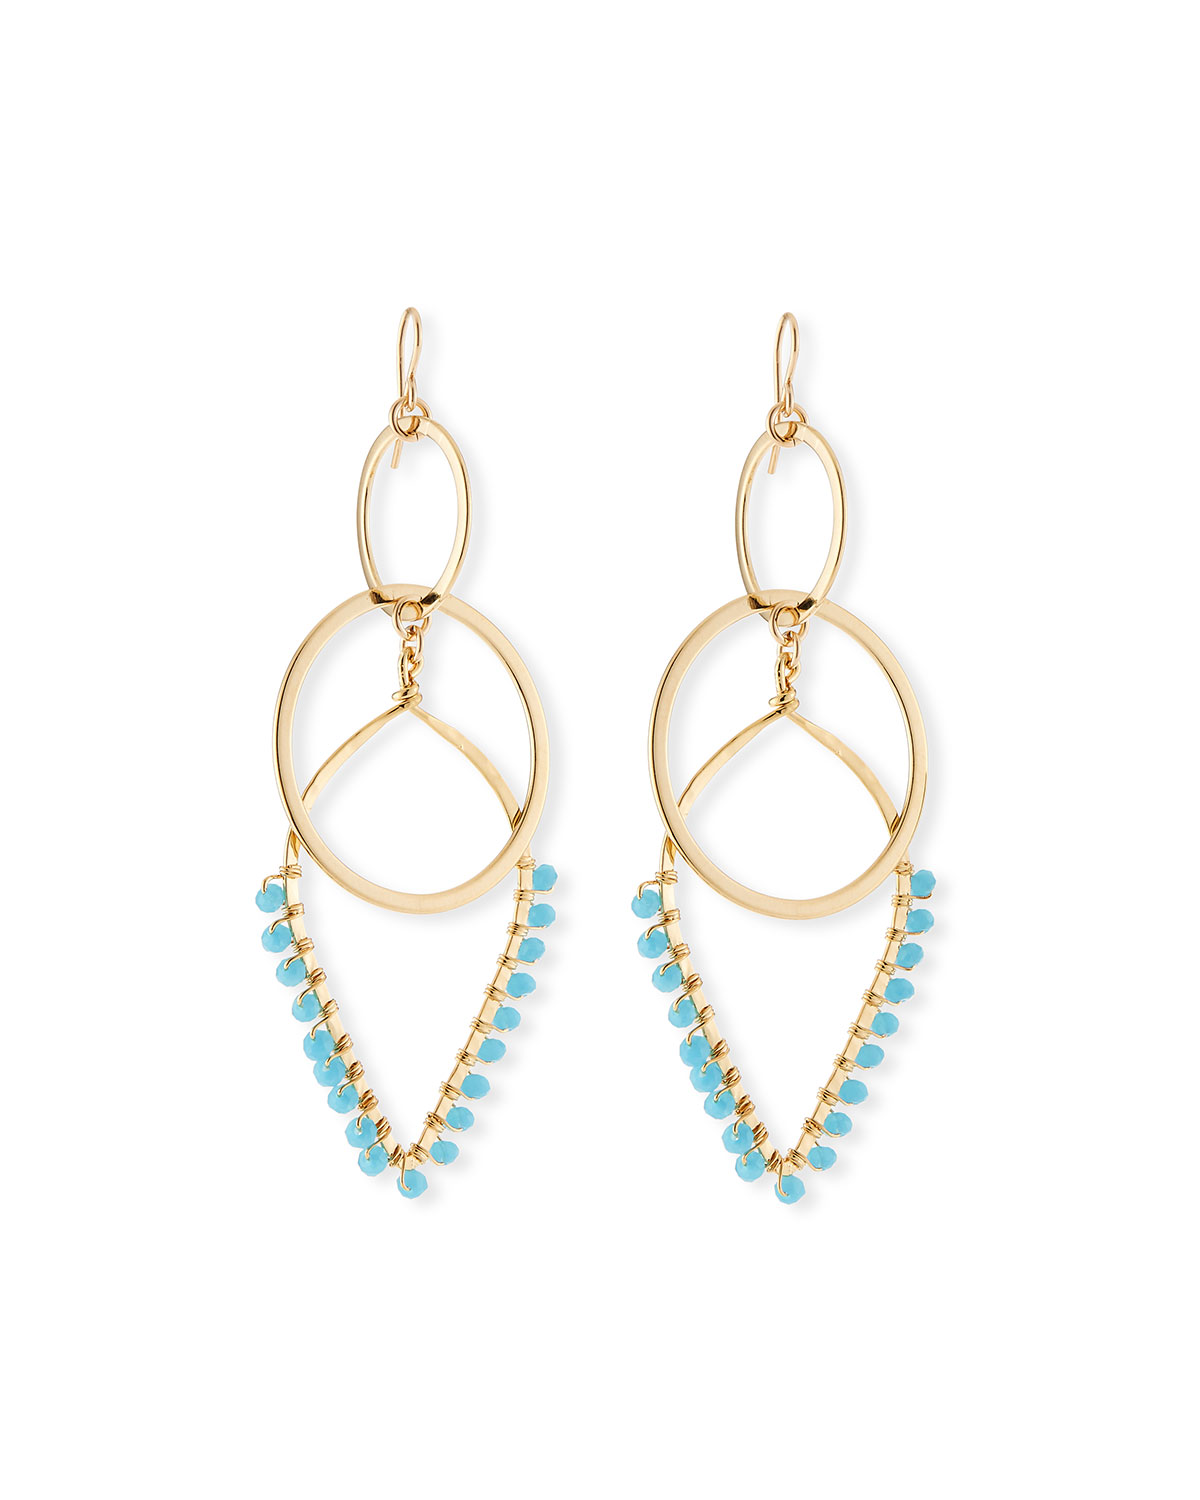 Devon Leigh Teardrop Double-Link Earrings